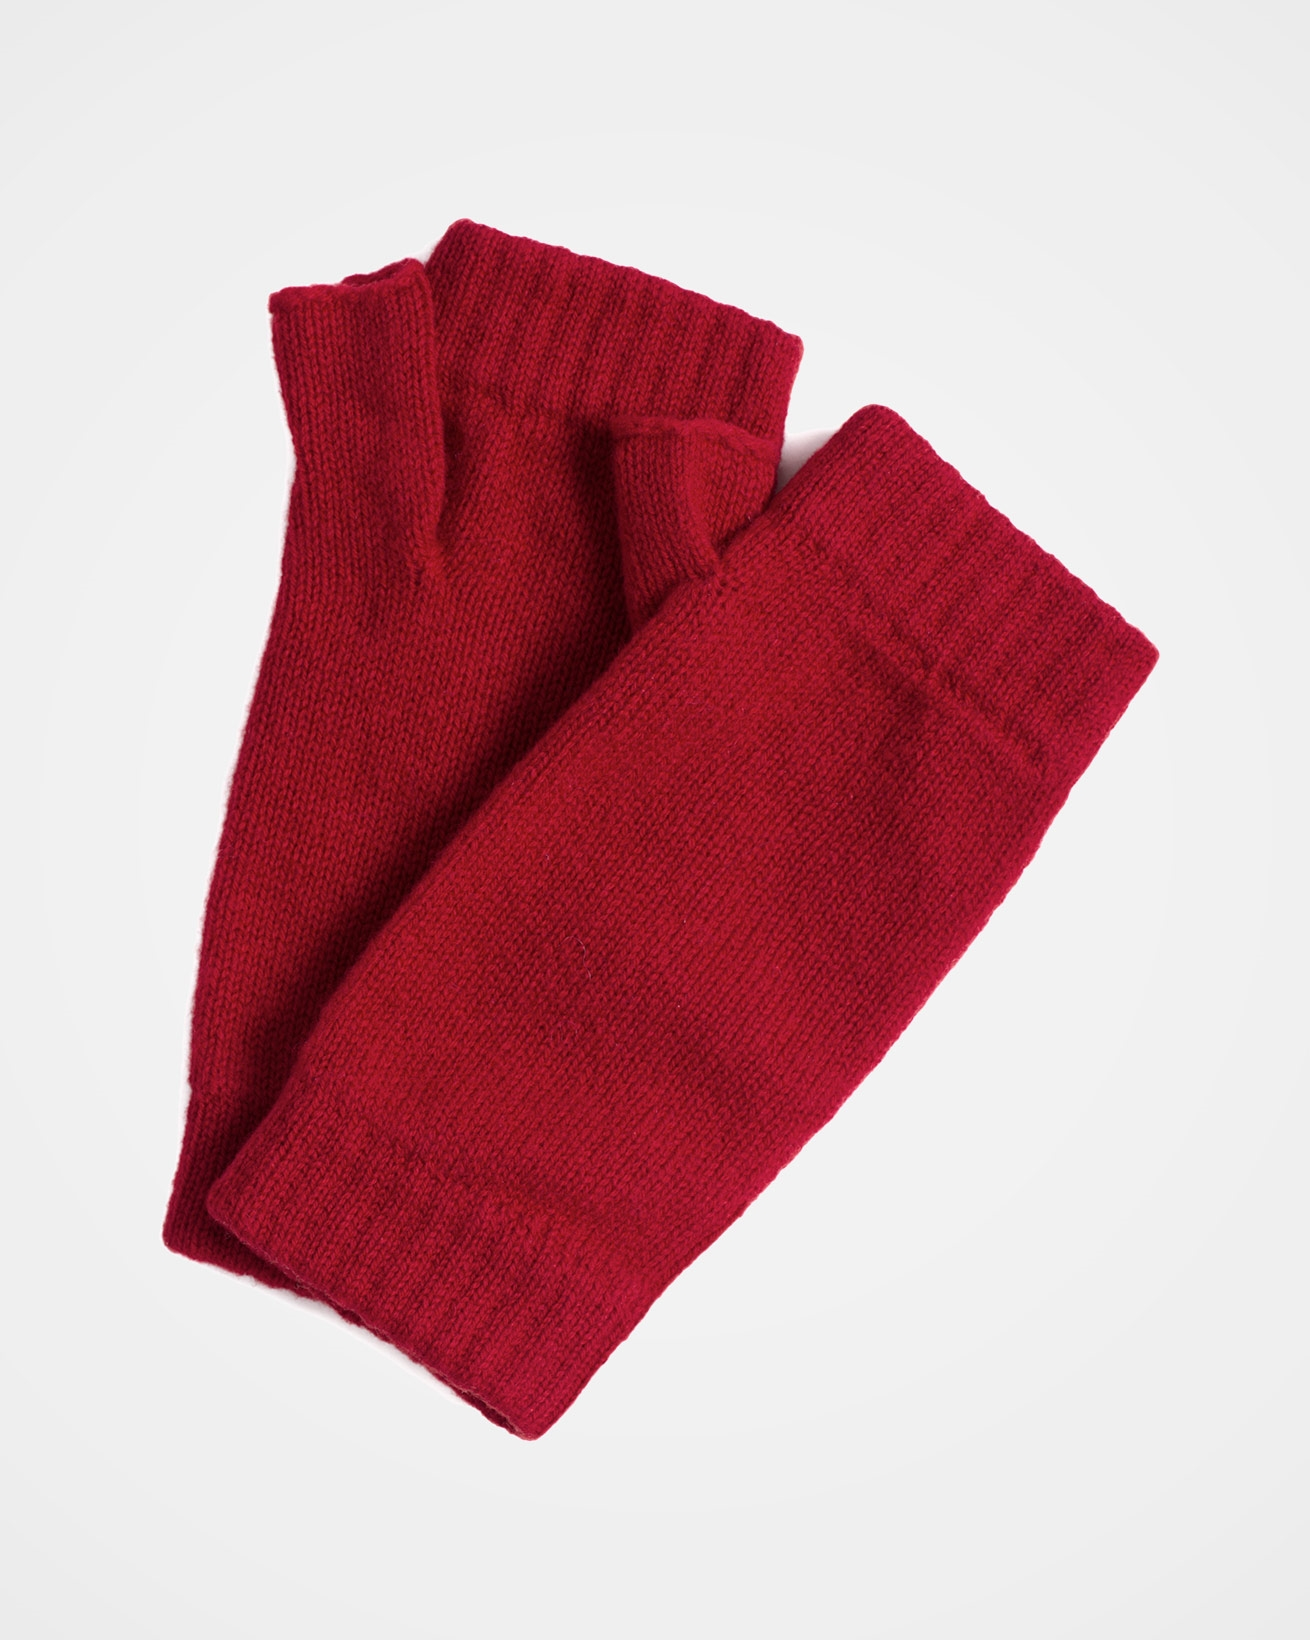 5878_cashmere-wristwarmer_red_web.jpg